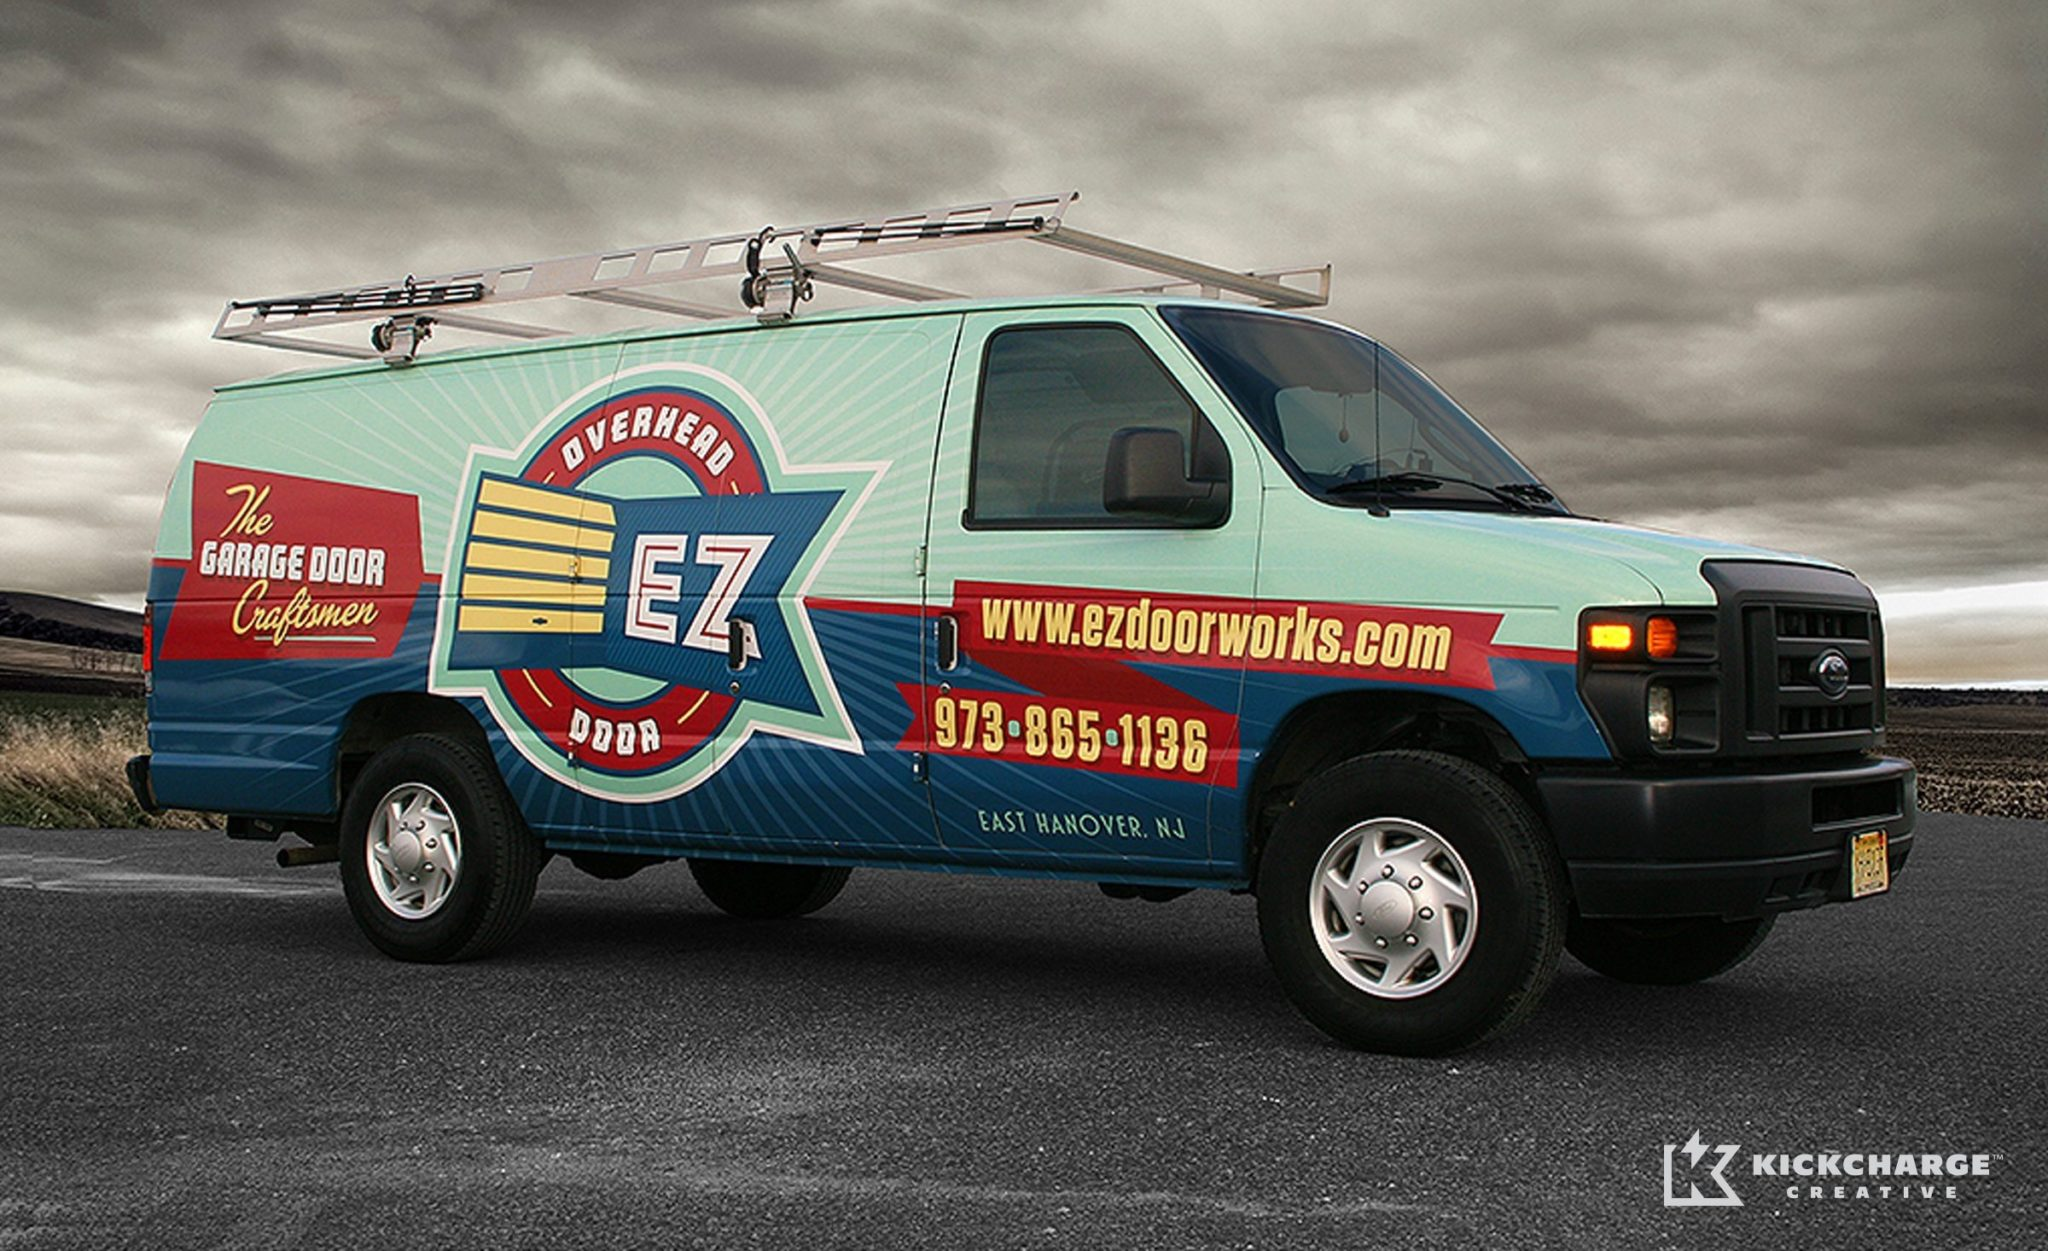 Brand identity and truck wrap design for a garage door installation company in East Hanover, NJ.